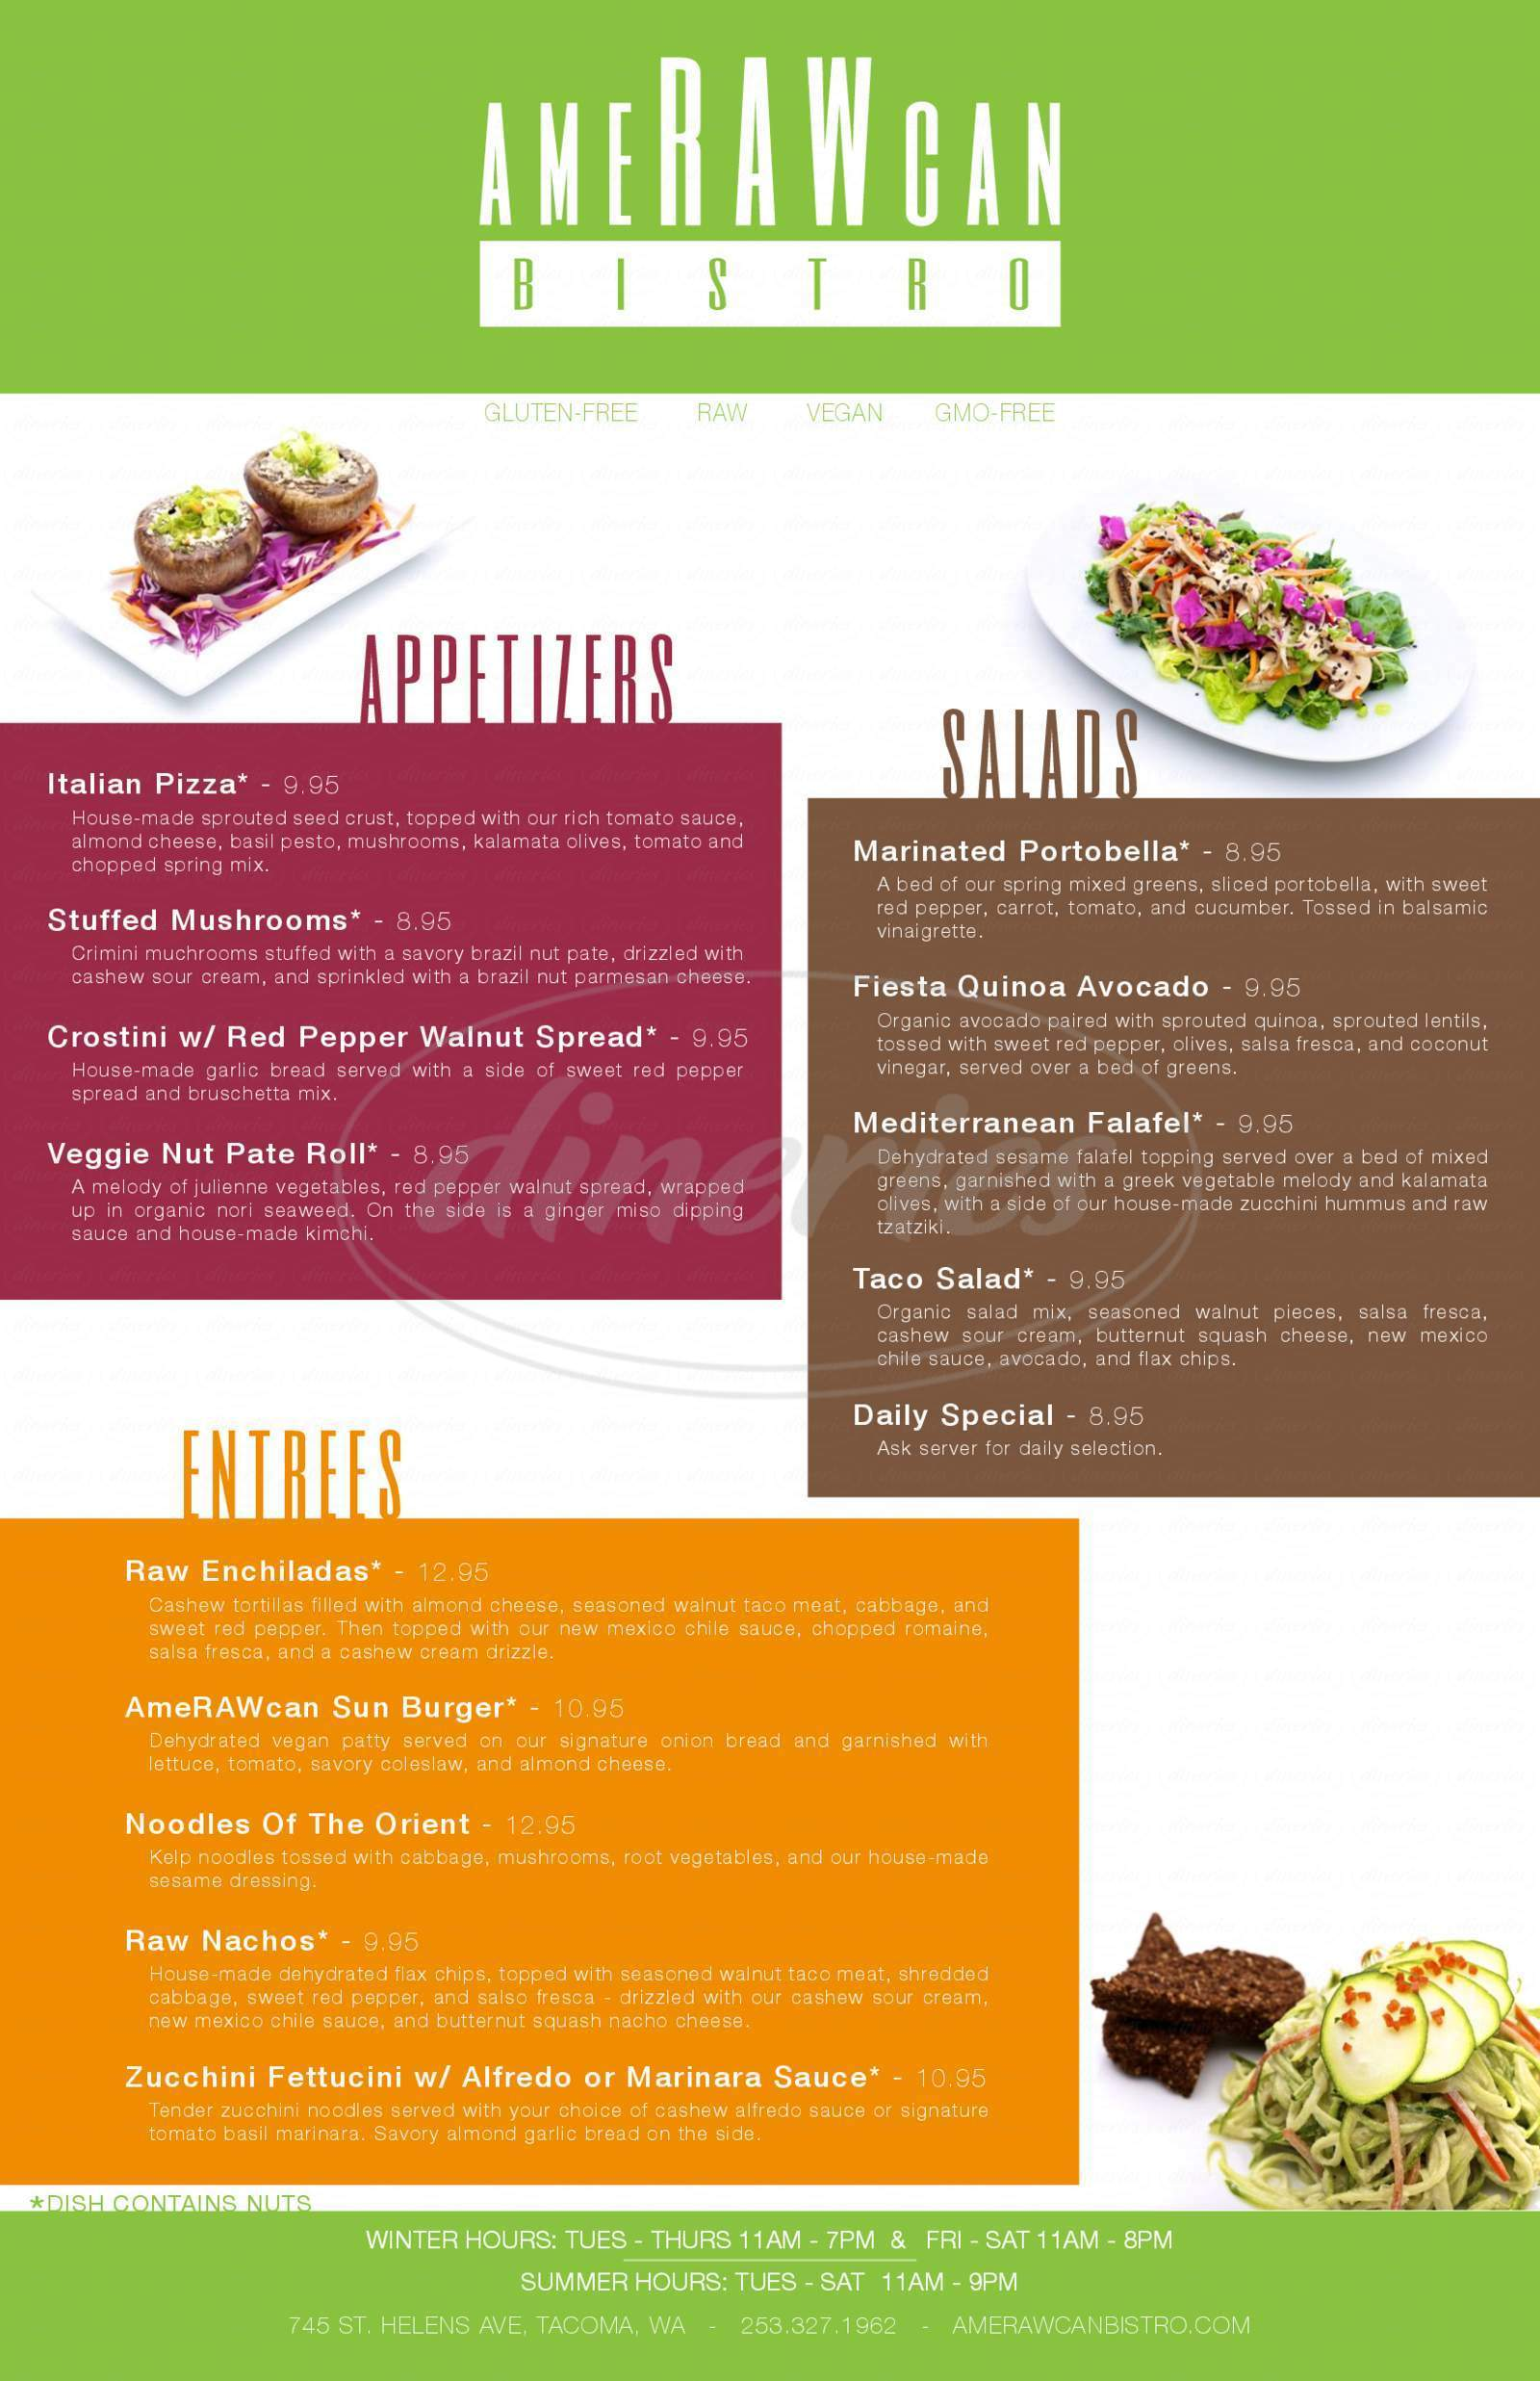 menu for Amerawcan Bistro